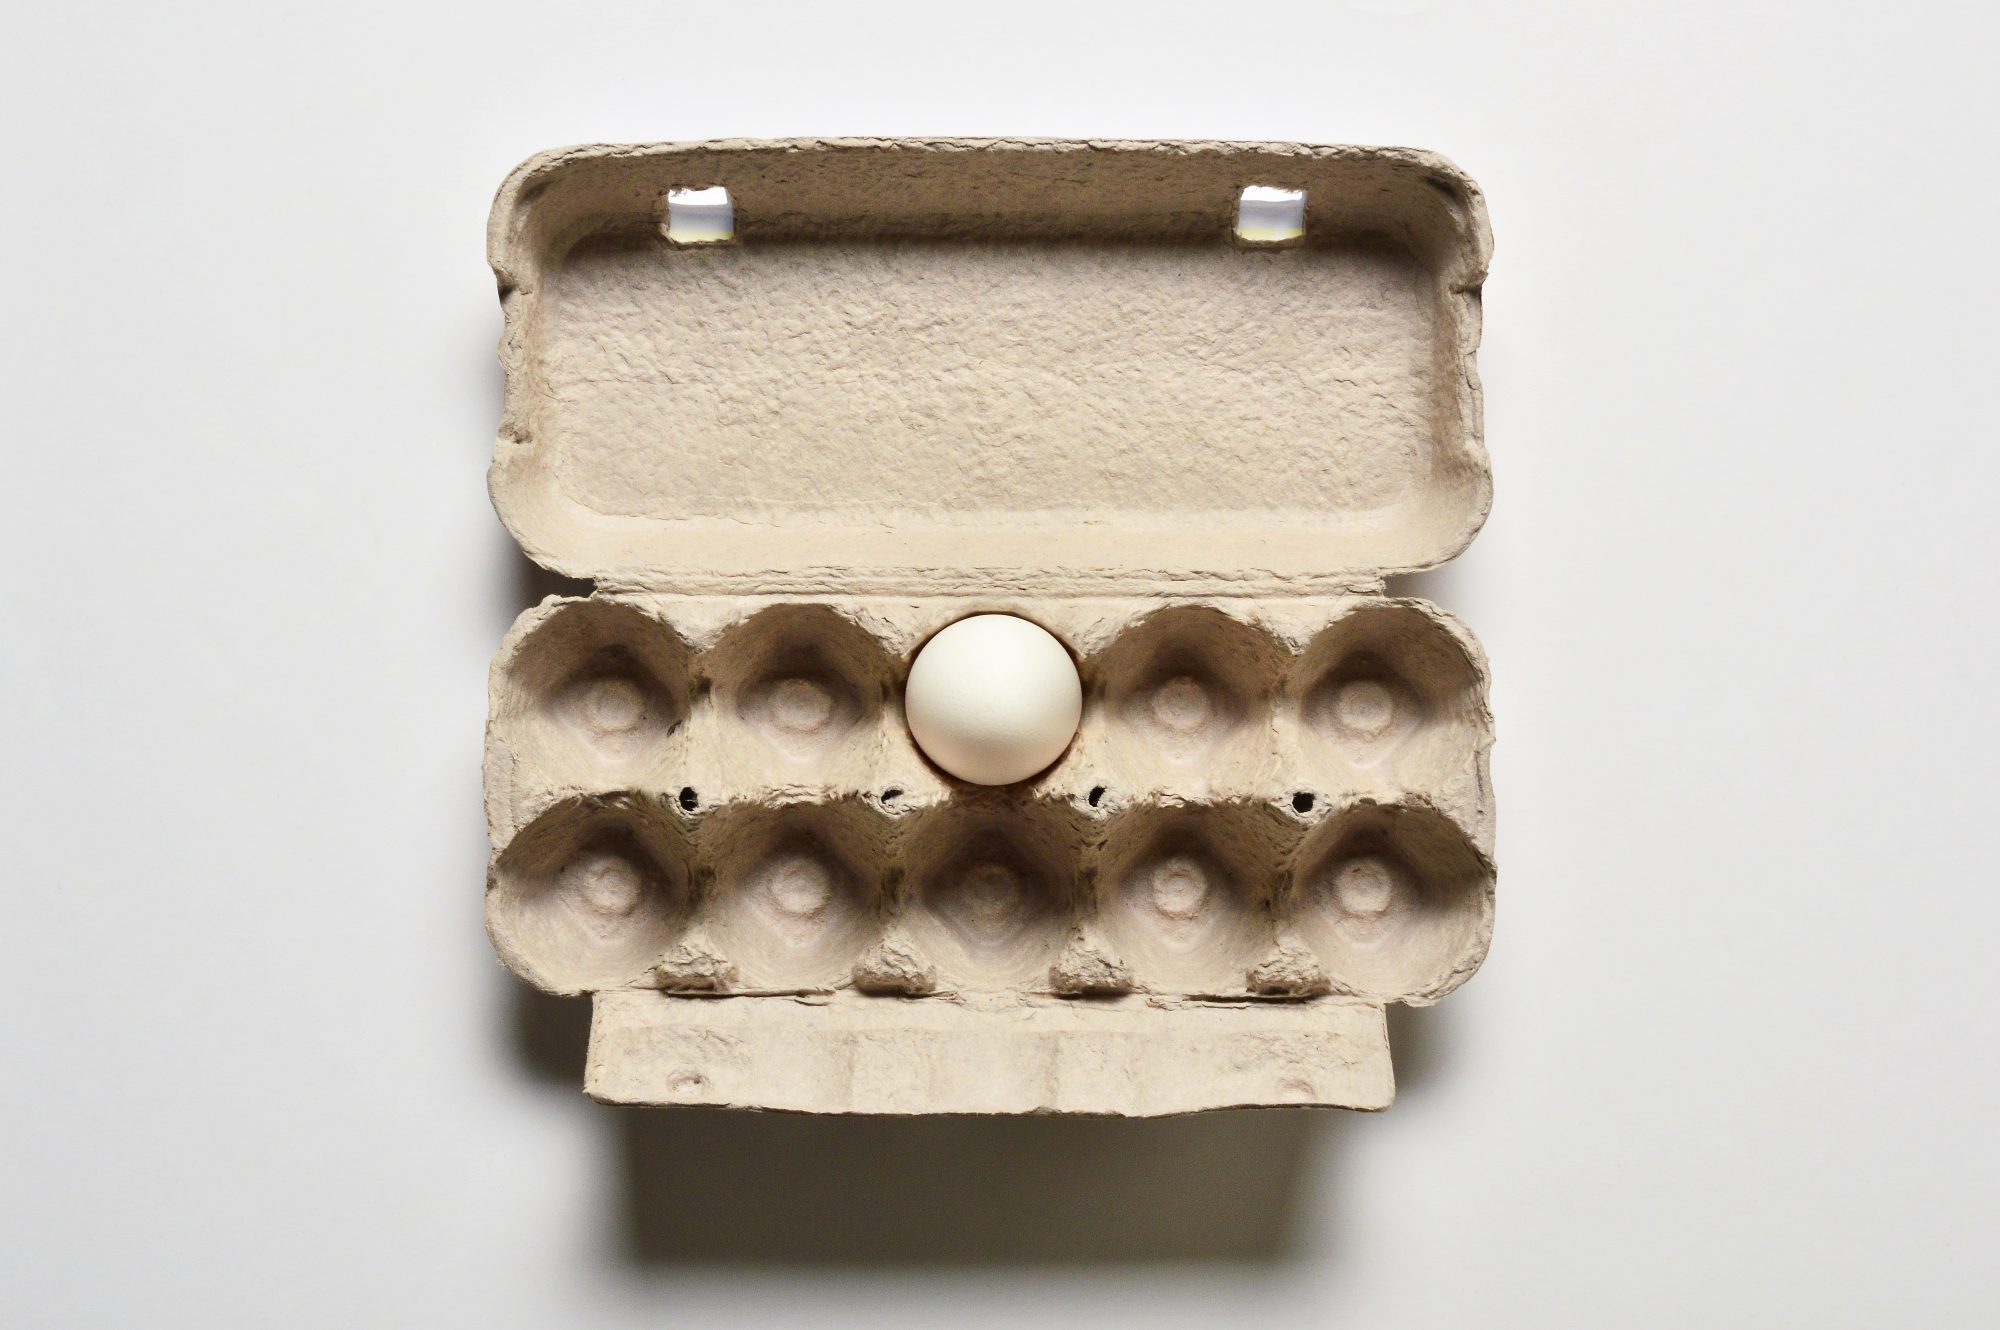 Egg Carton Getty 3/23/20